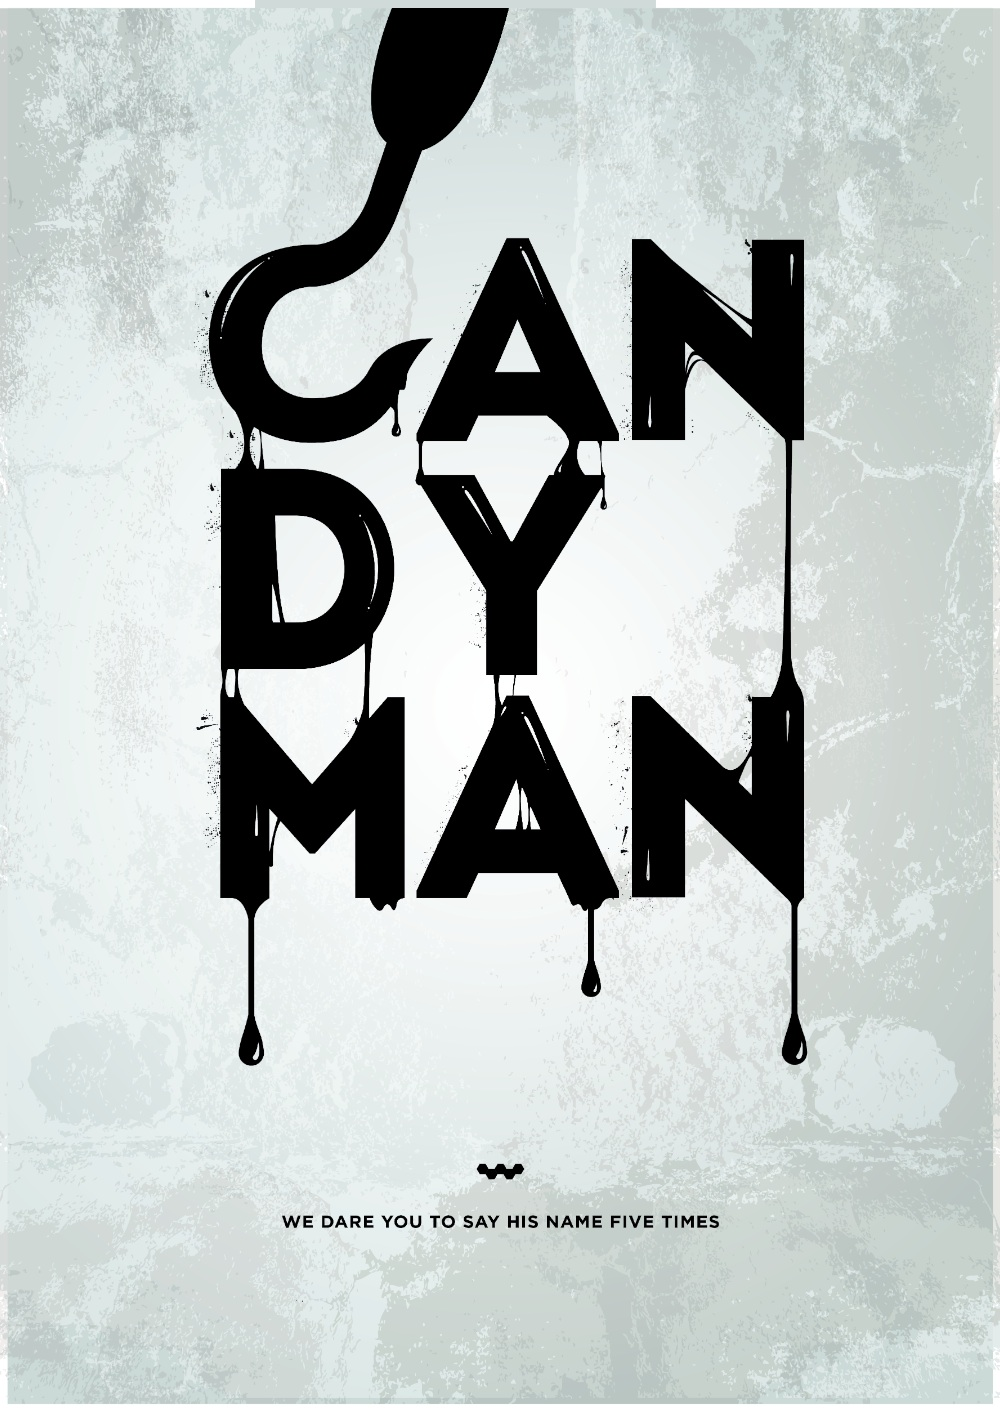 Candyman by Creative Spark.